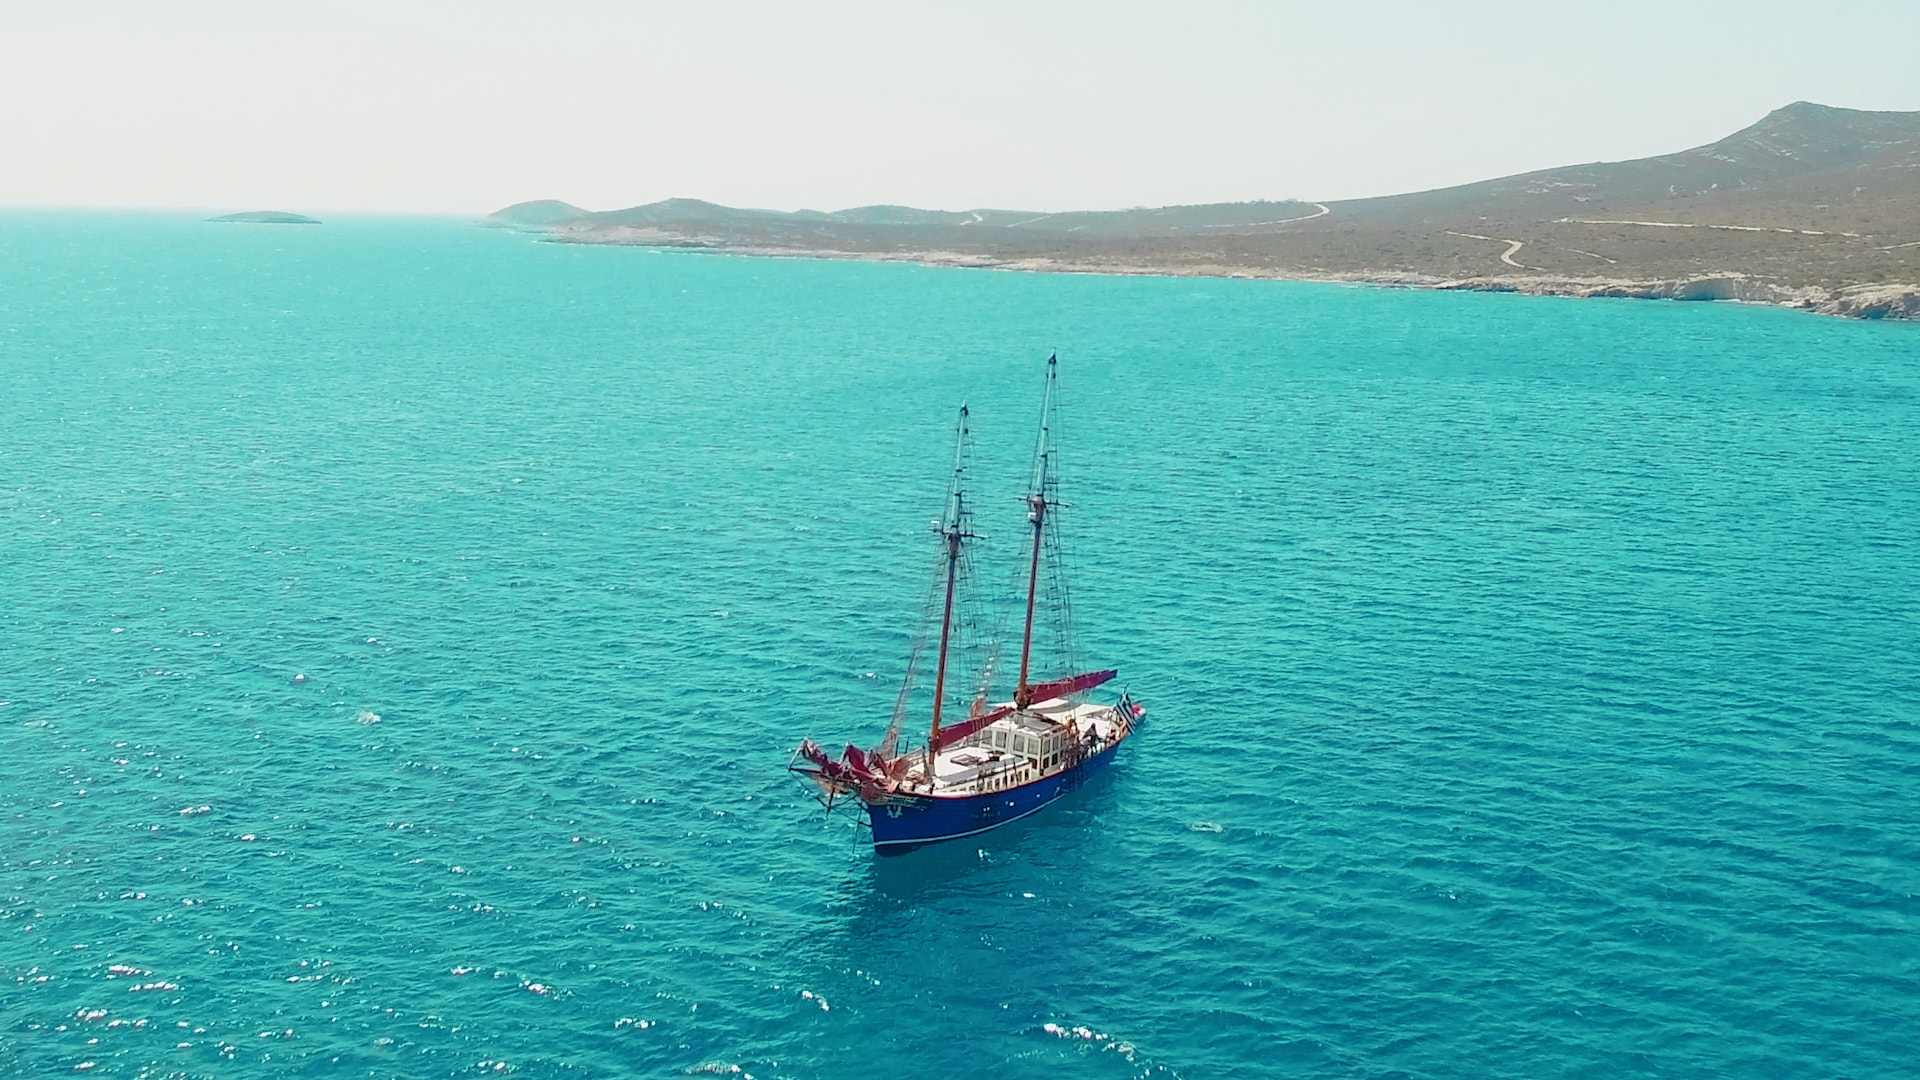 visit-cyclades_private-cruise_paros-islands_boat-view-1